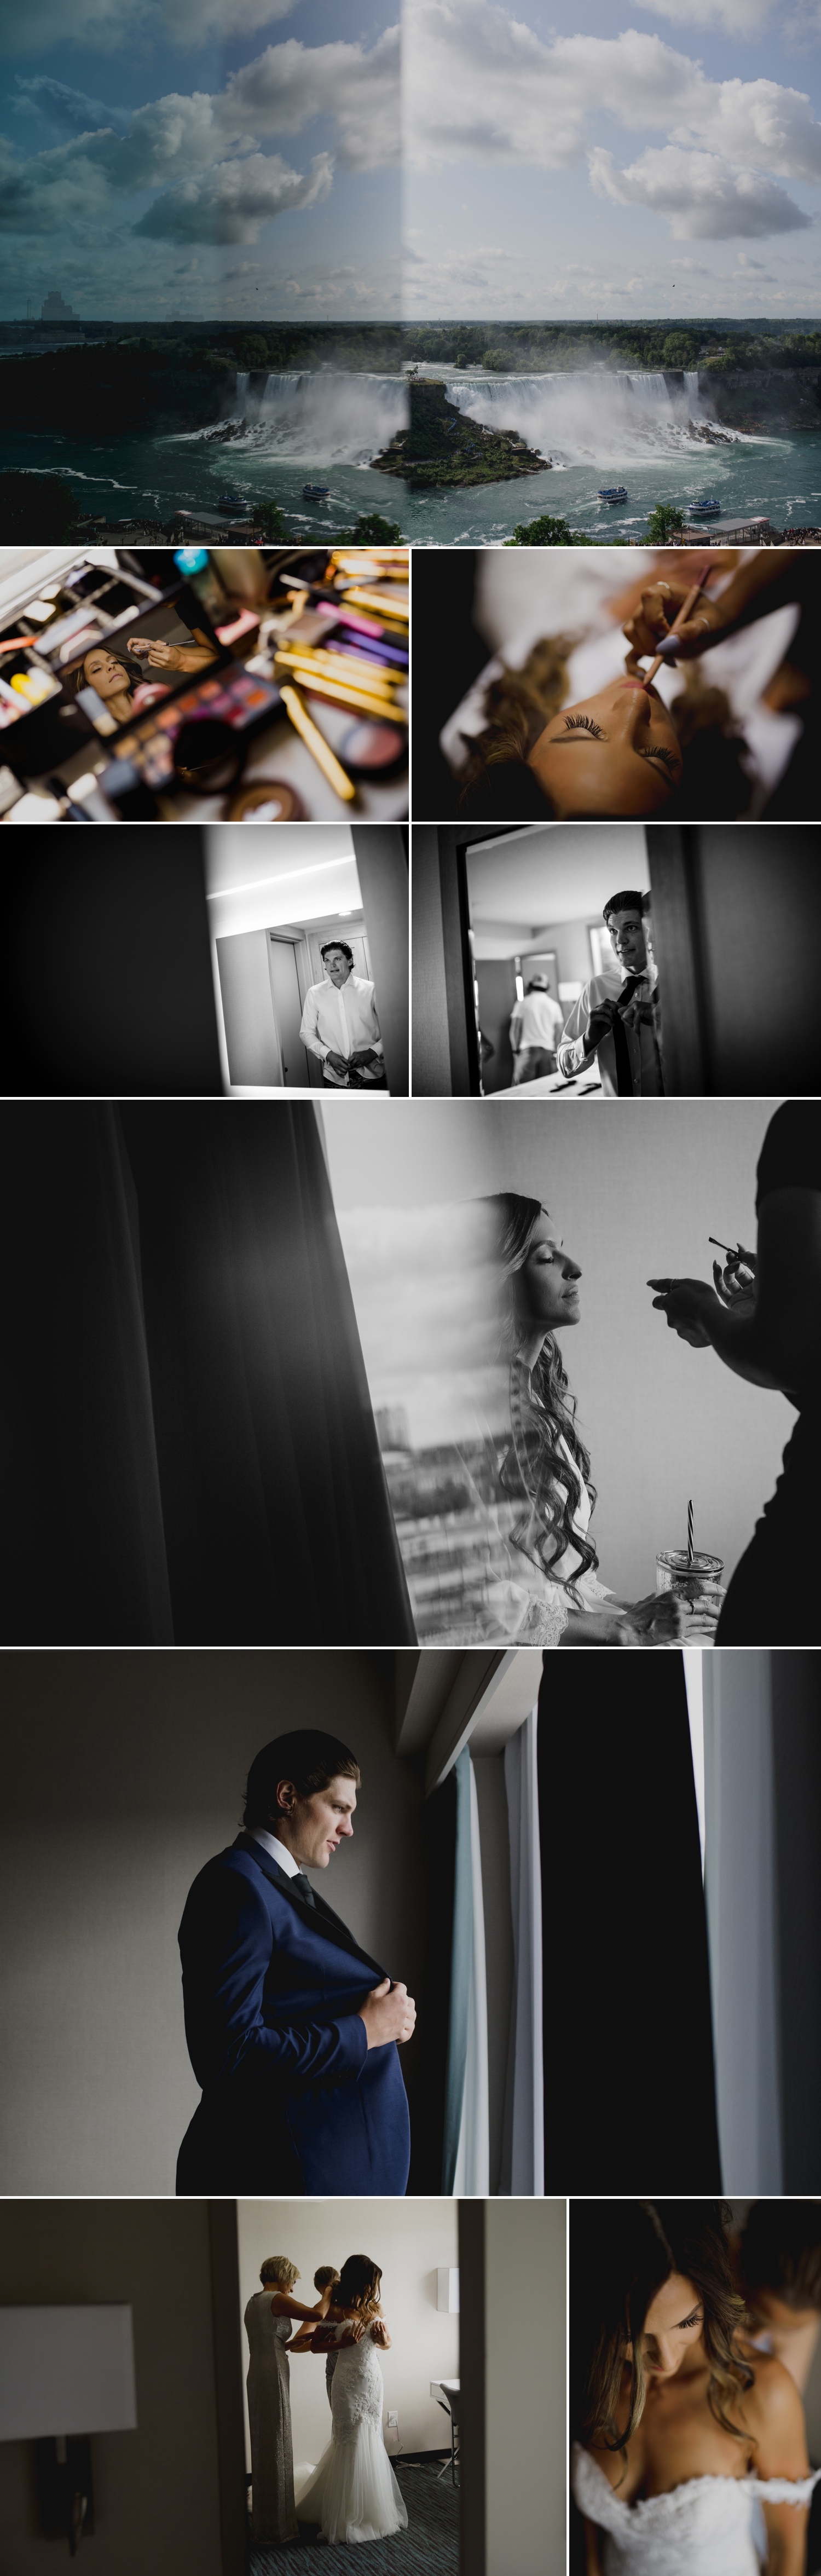 photos of the brides and groom getting ready for their wedding ceremony at the ravine vineyard in niagara on the lake ontario